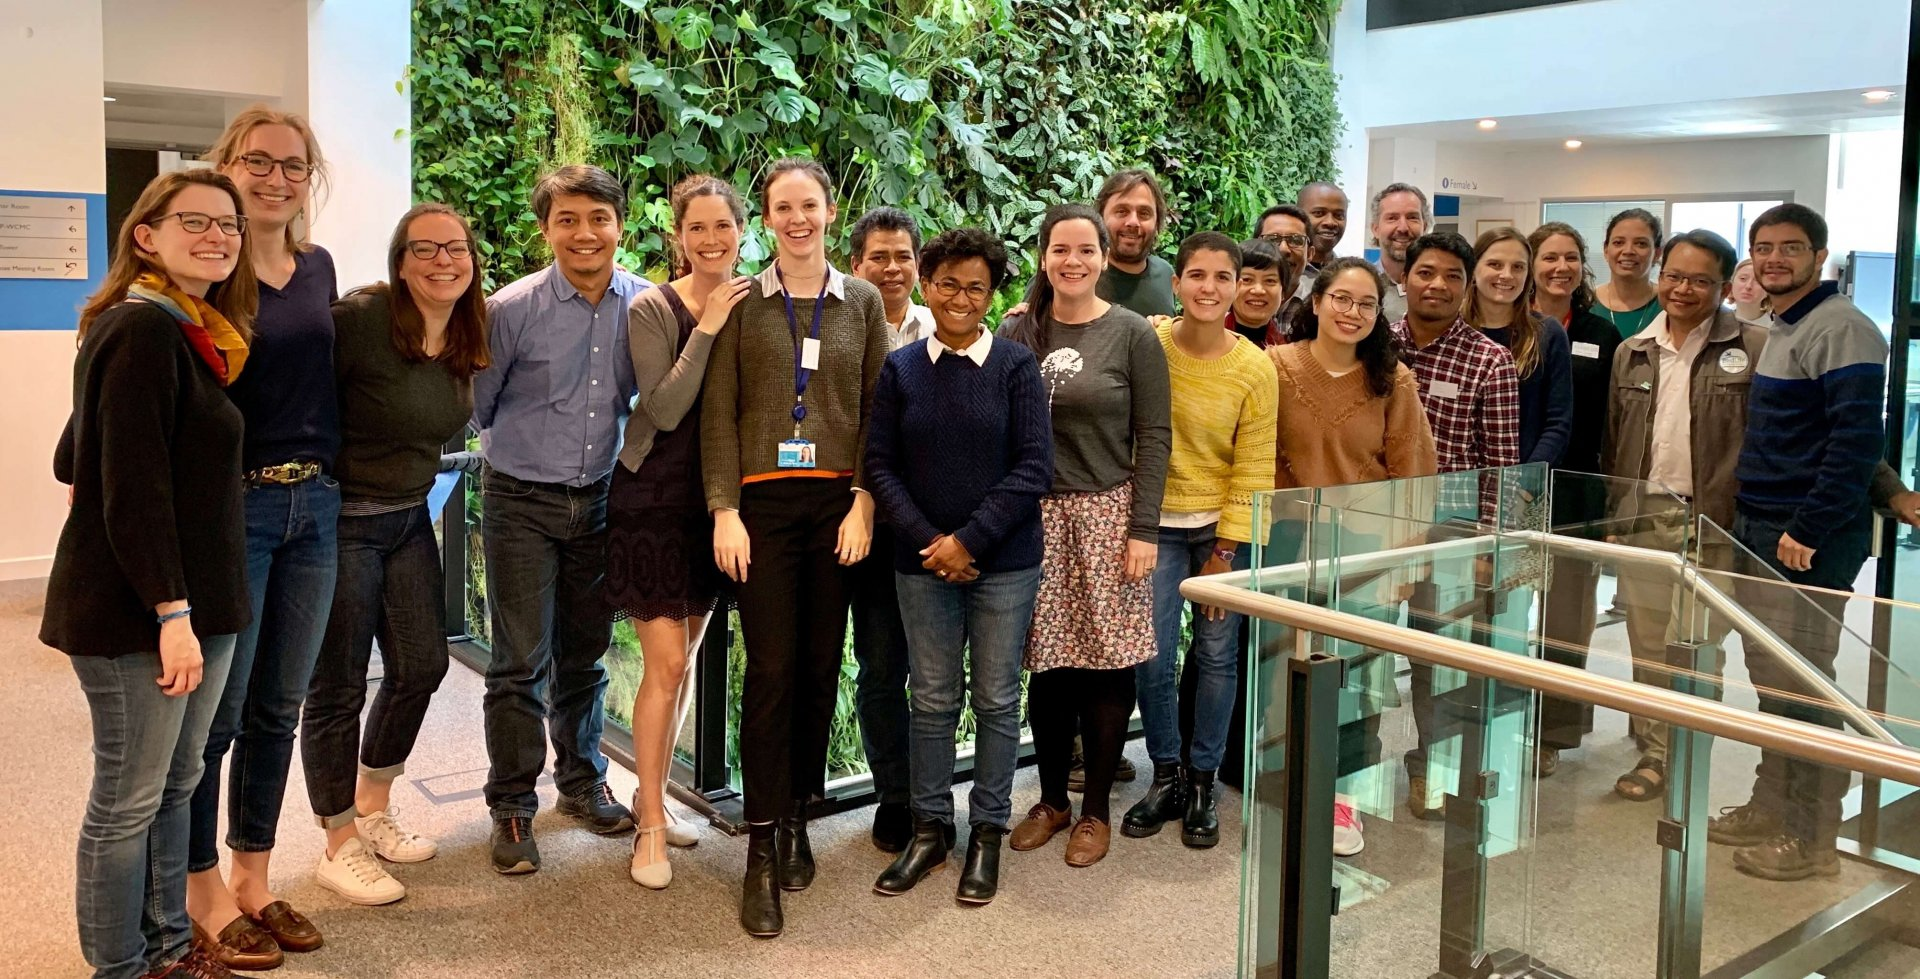 Rado (seventh from left) at the Forest Accelerator workshop in Cambridge, UK in 2019